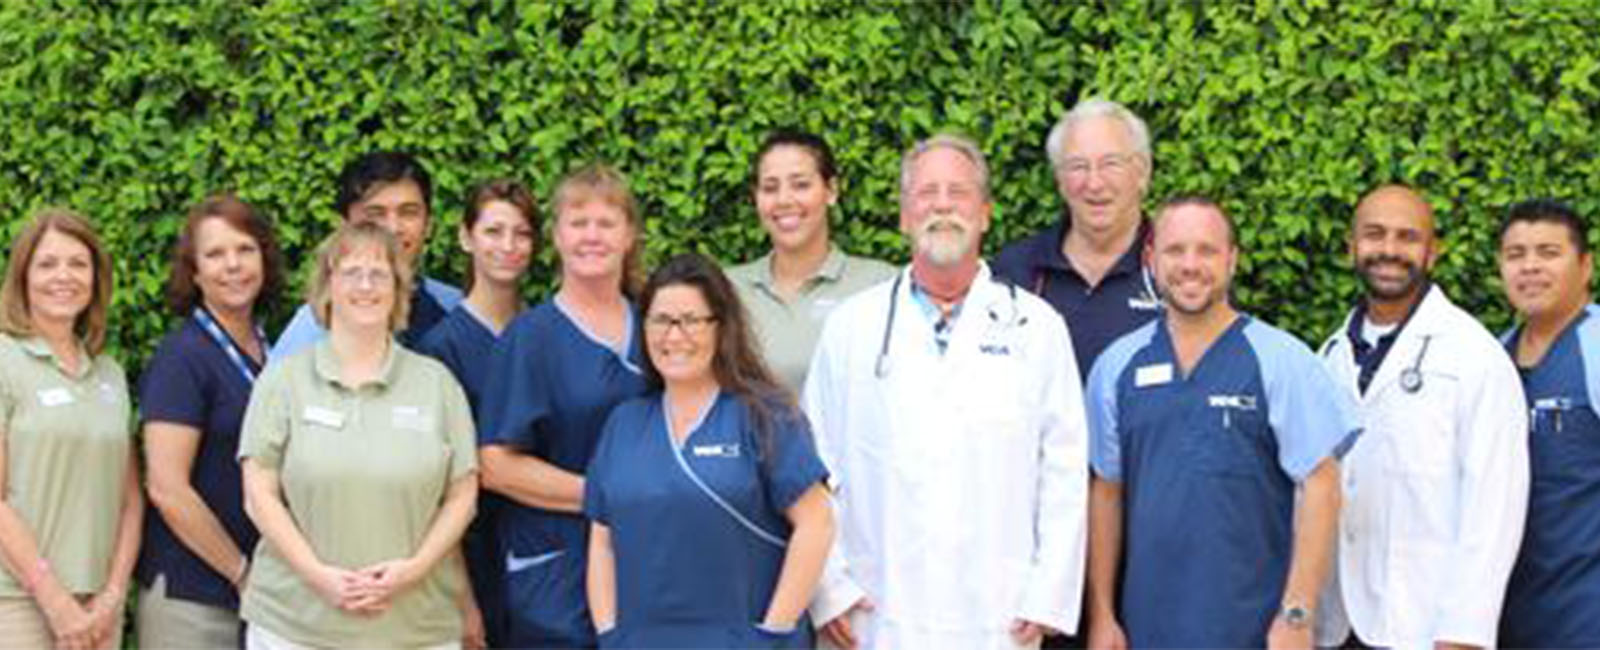 Homepage Team Picture of VCA All Creatures Animal Hospital